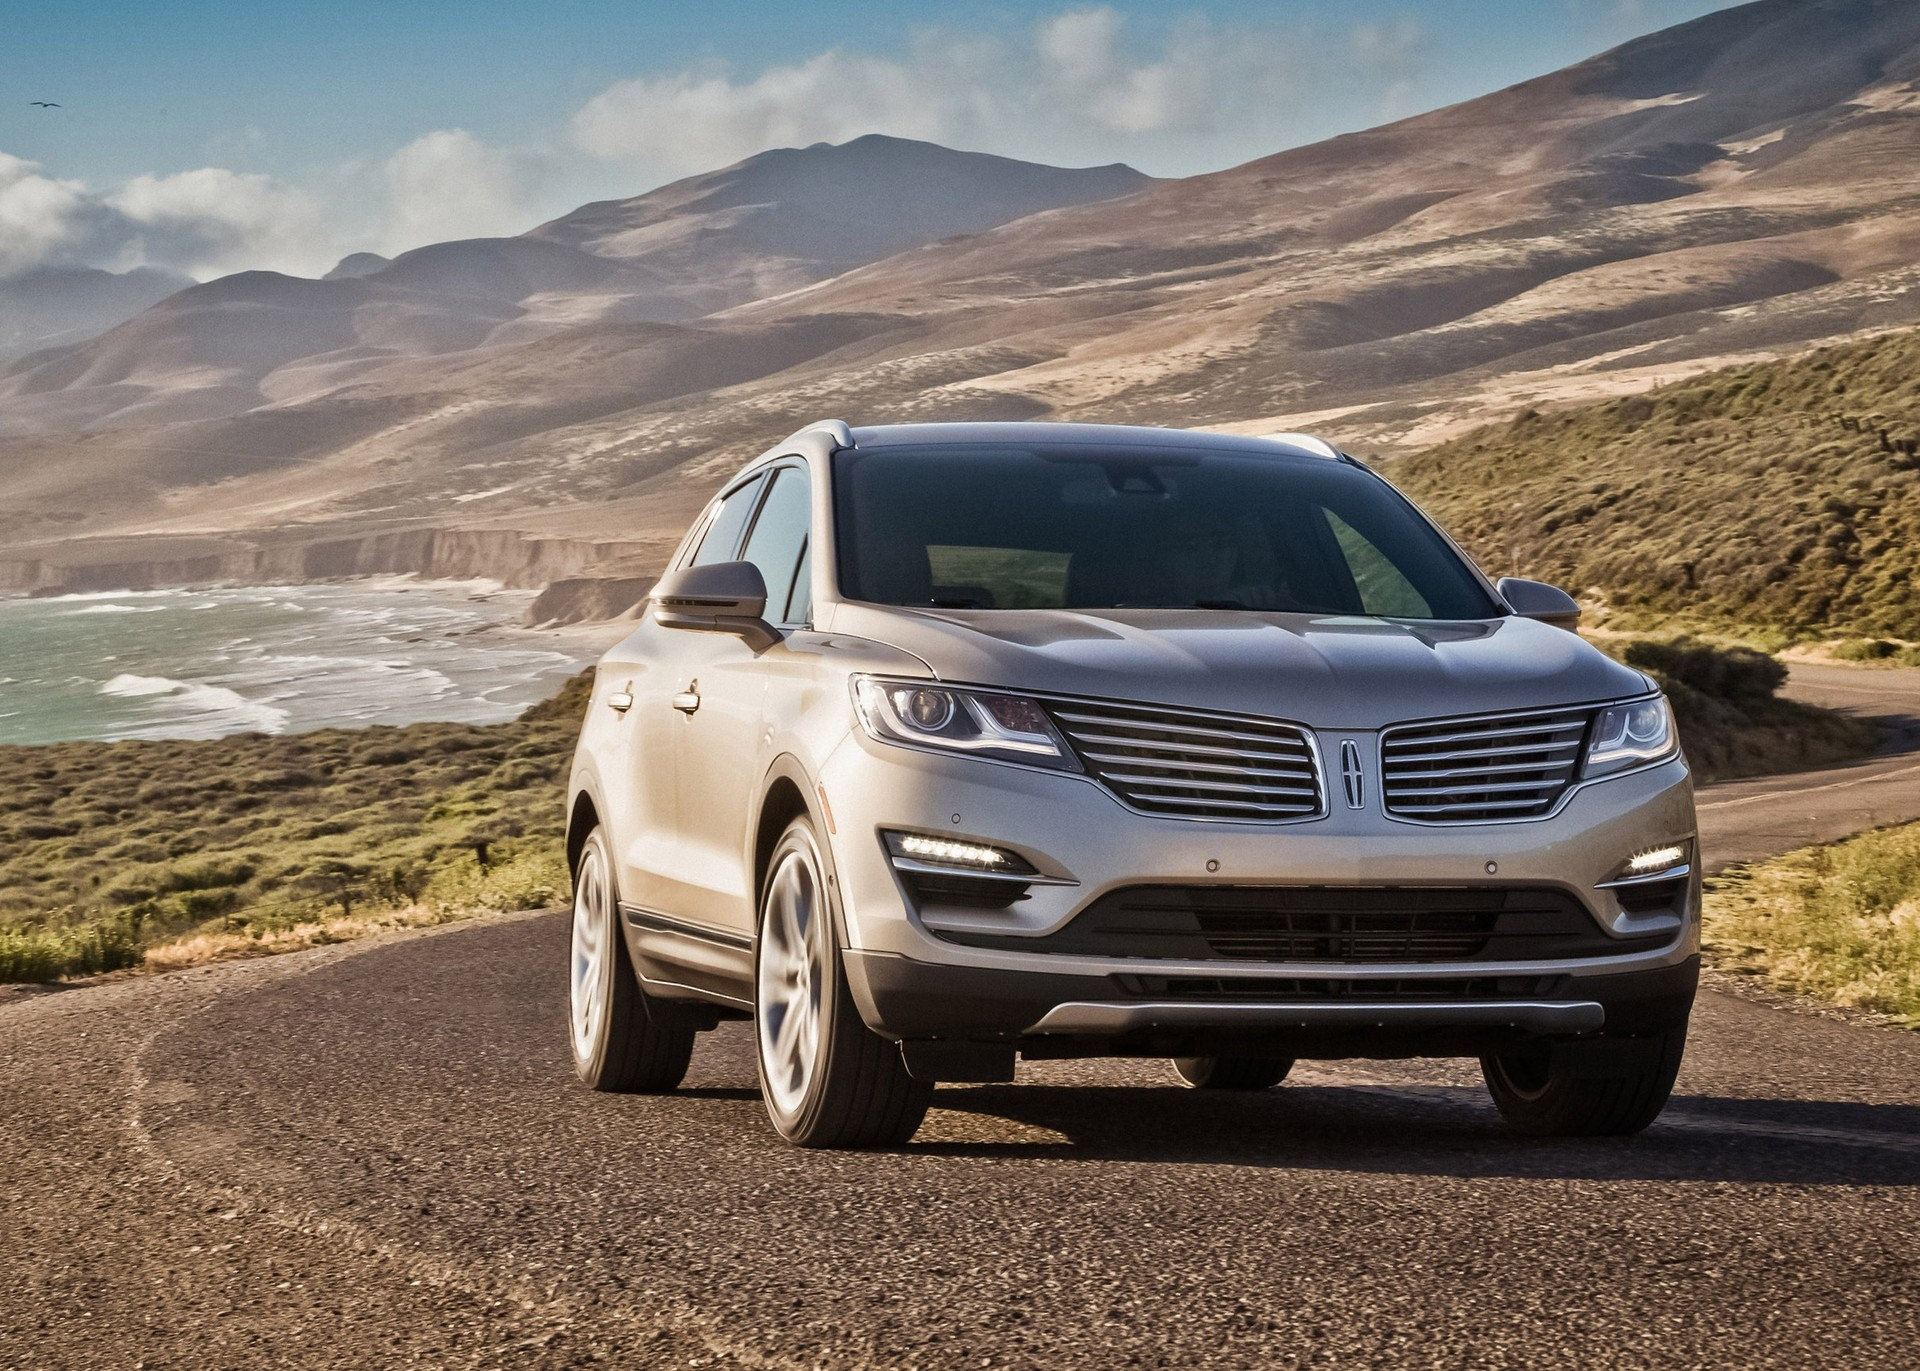 90 A 2020 Lincoln Mkx At Beijing Motor Show History